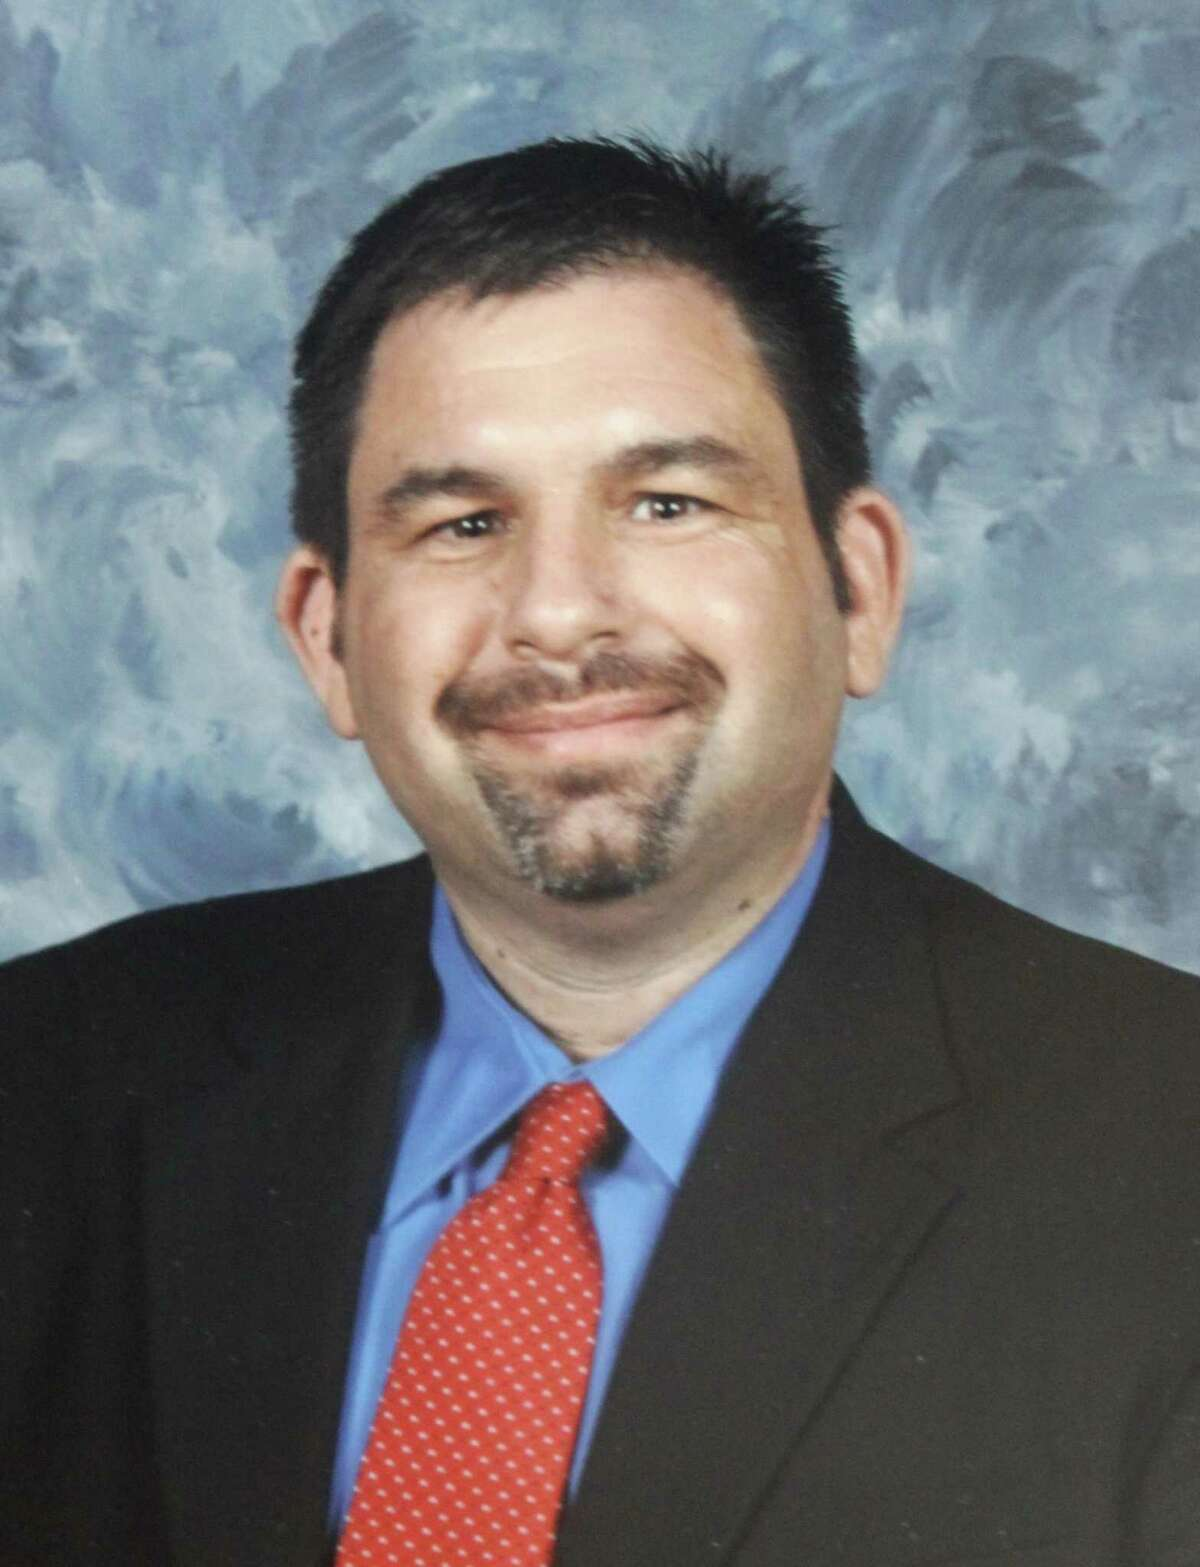 Gerald Chandler was named the new Assistant Superintendent for Lumberton ISD at Friday night's School Board meeting.